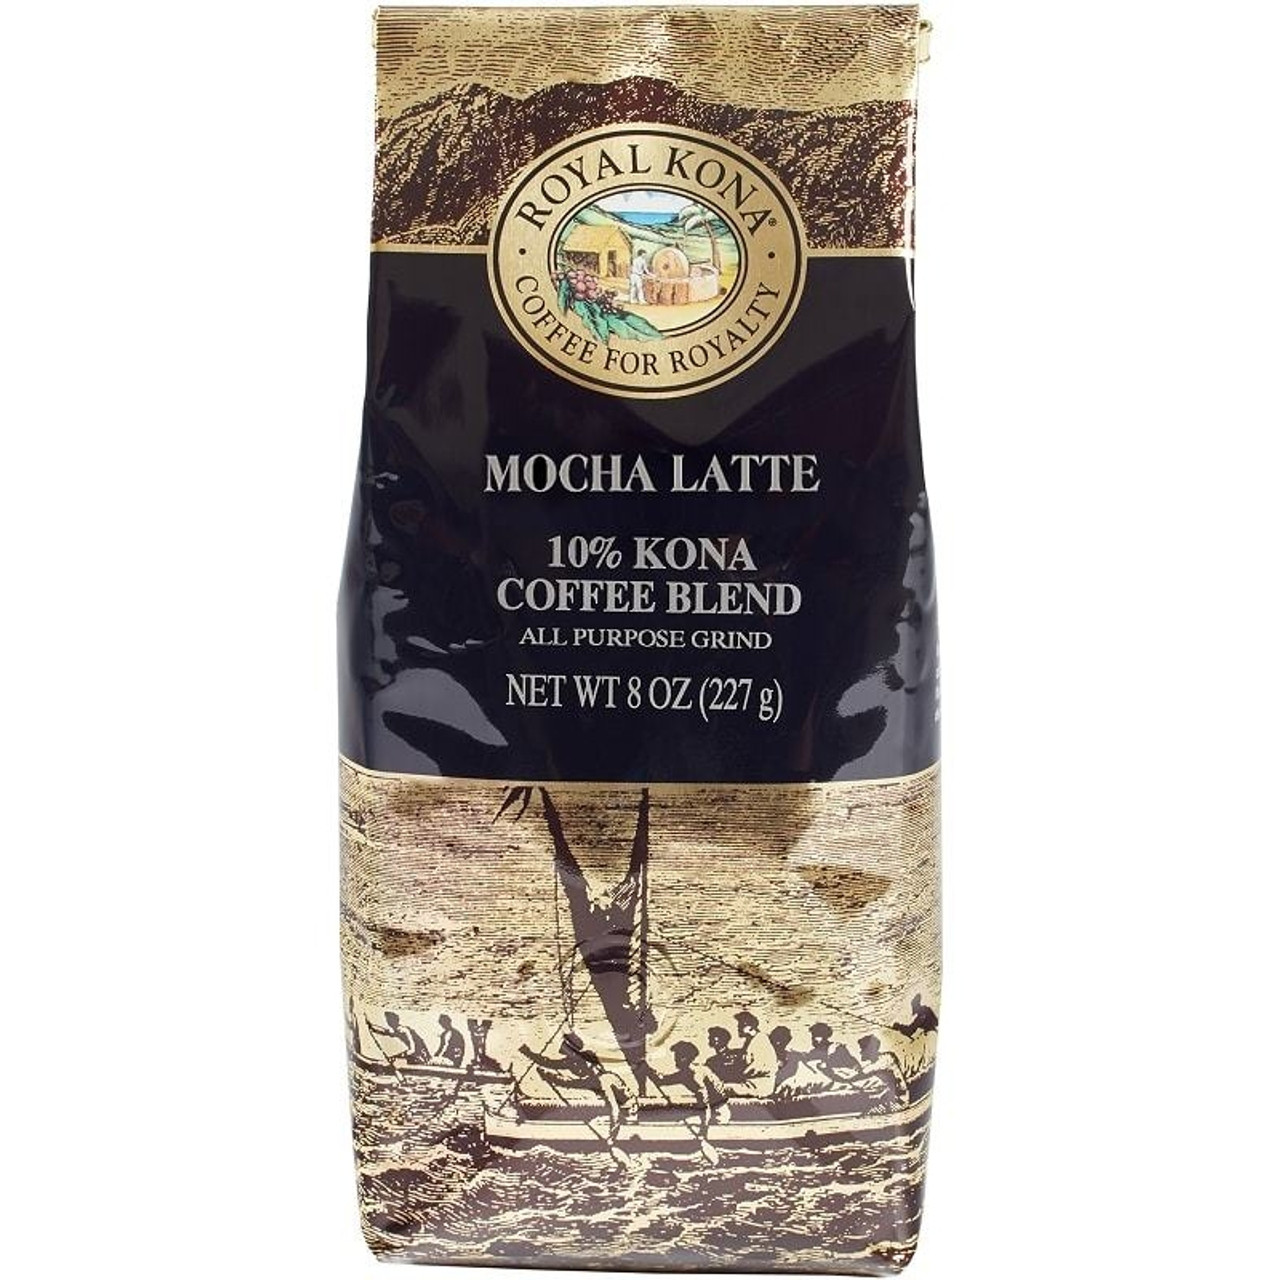 Royal Kona Mocha Latte Flavored